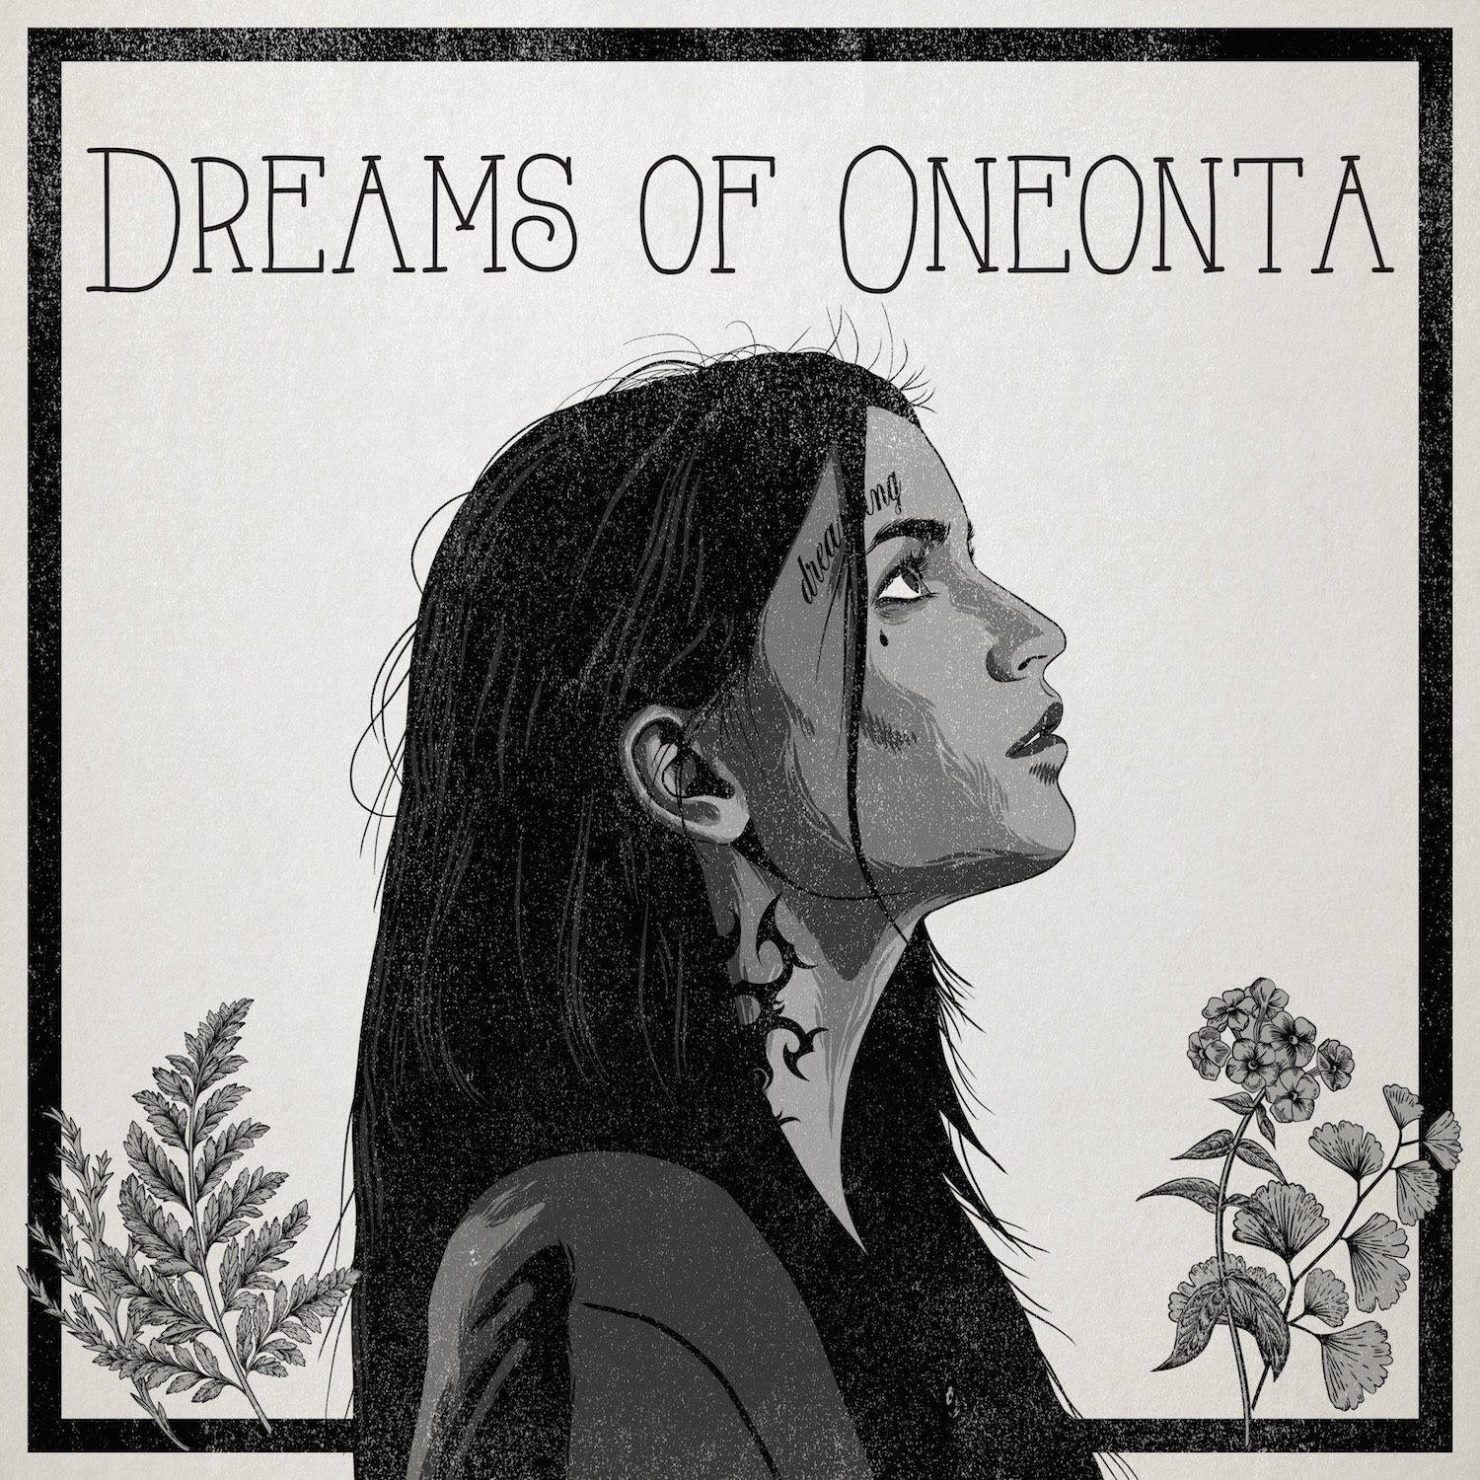 Dreams of Oneonta